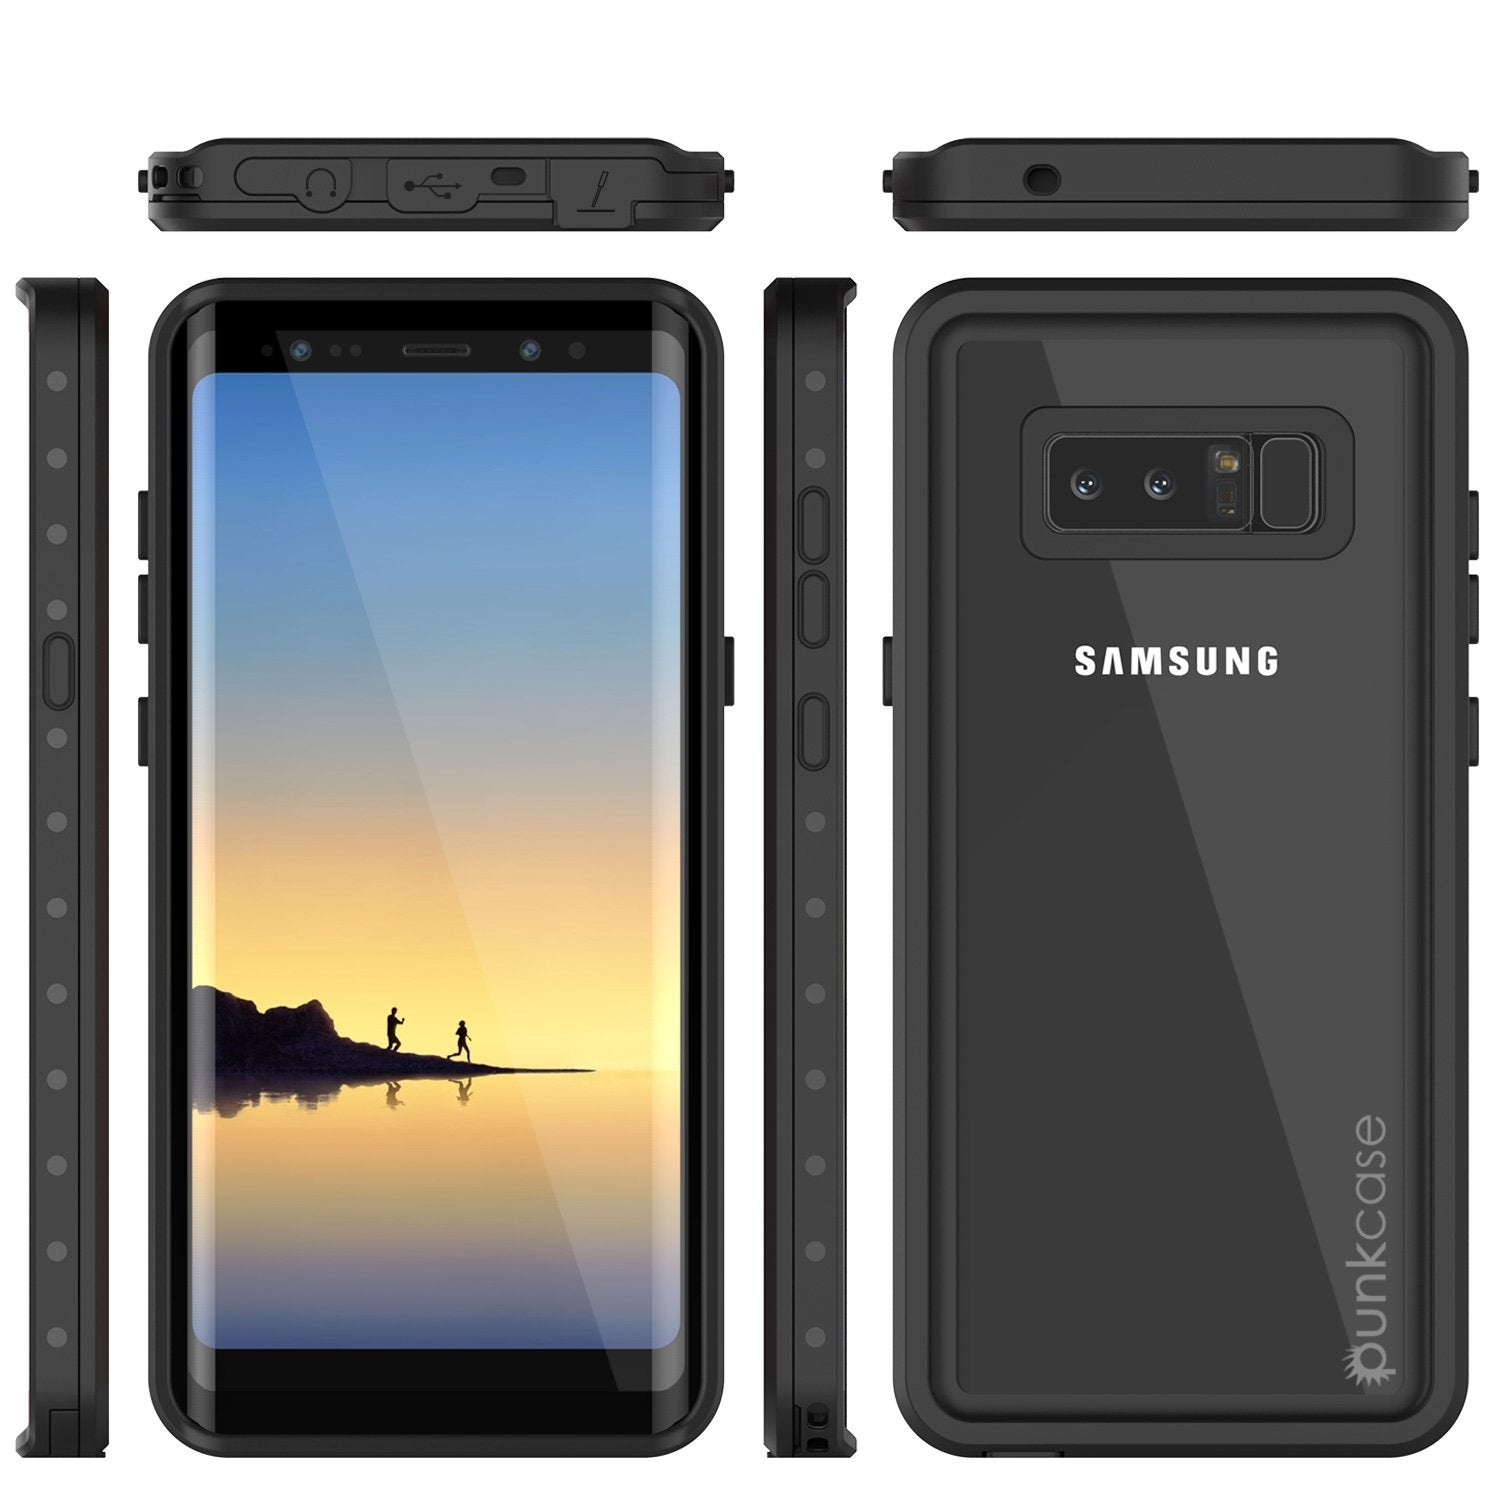 Galaxy Note 8 Waterproof Case Punkсase StudStar Clear Thin 6.6ft Underwater IP68 Shock/Snow Proof